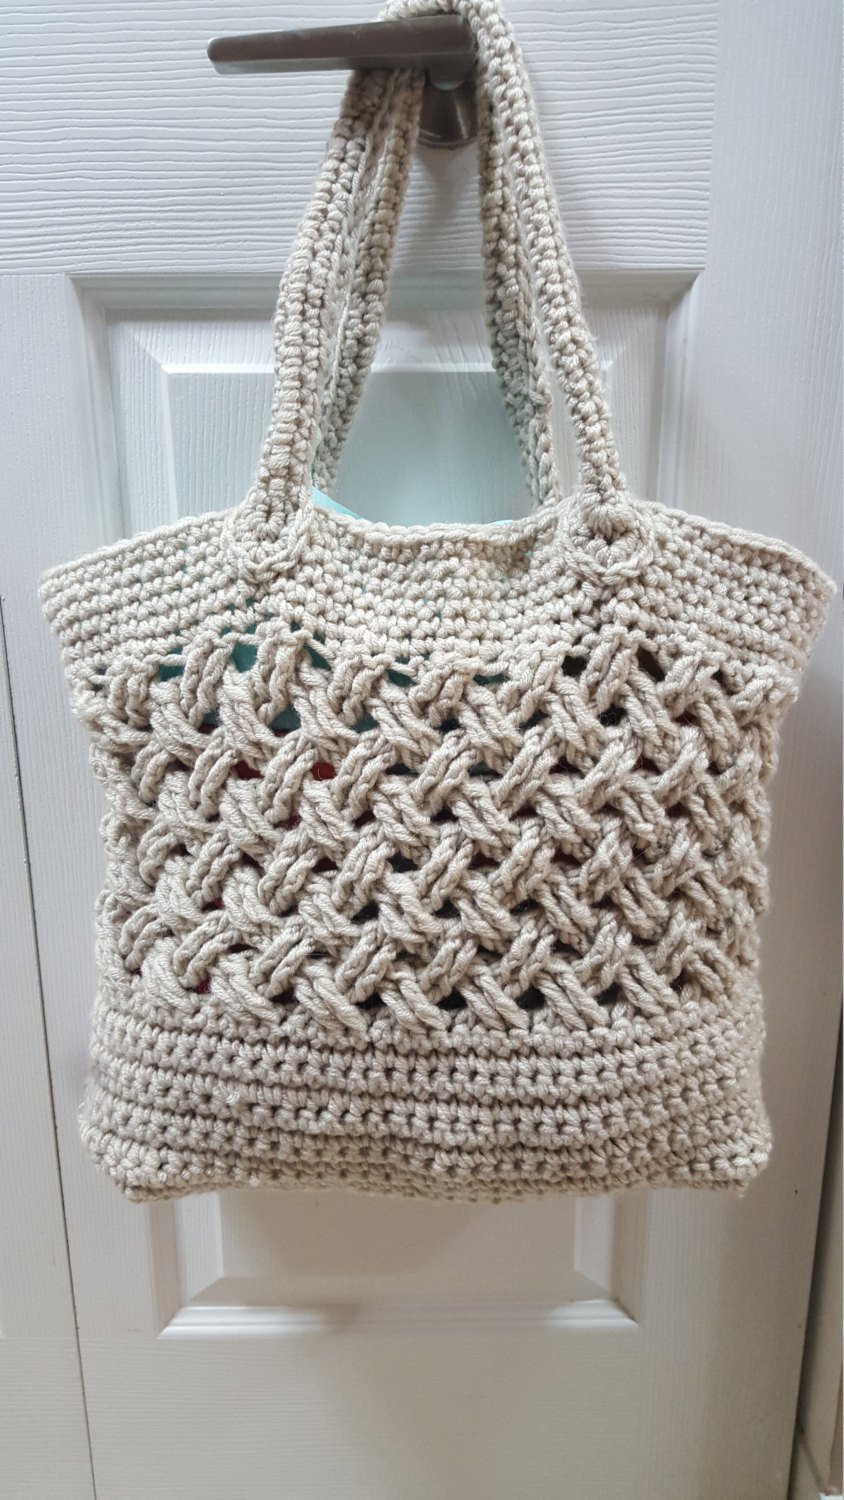 Crochet Purse Pattern Best Of Crochet Pattern Crochet Bag Crochet Bag Pattern Crochet Of Adorable 44 Photos Crochet Purse Pattern